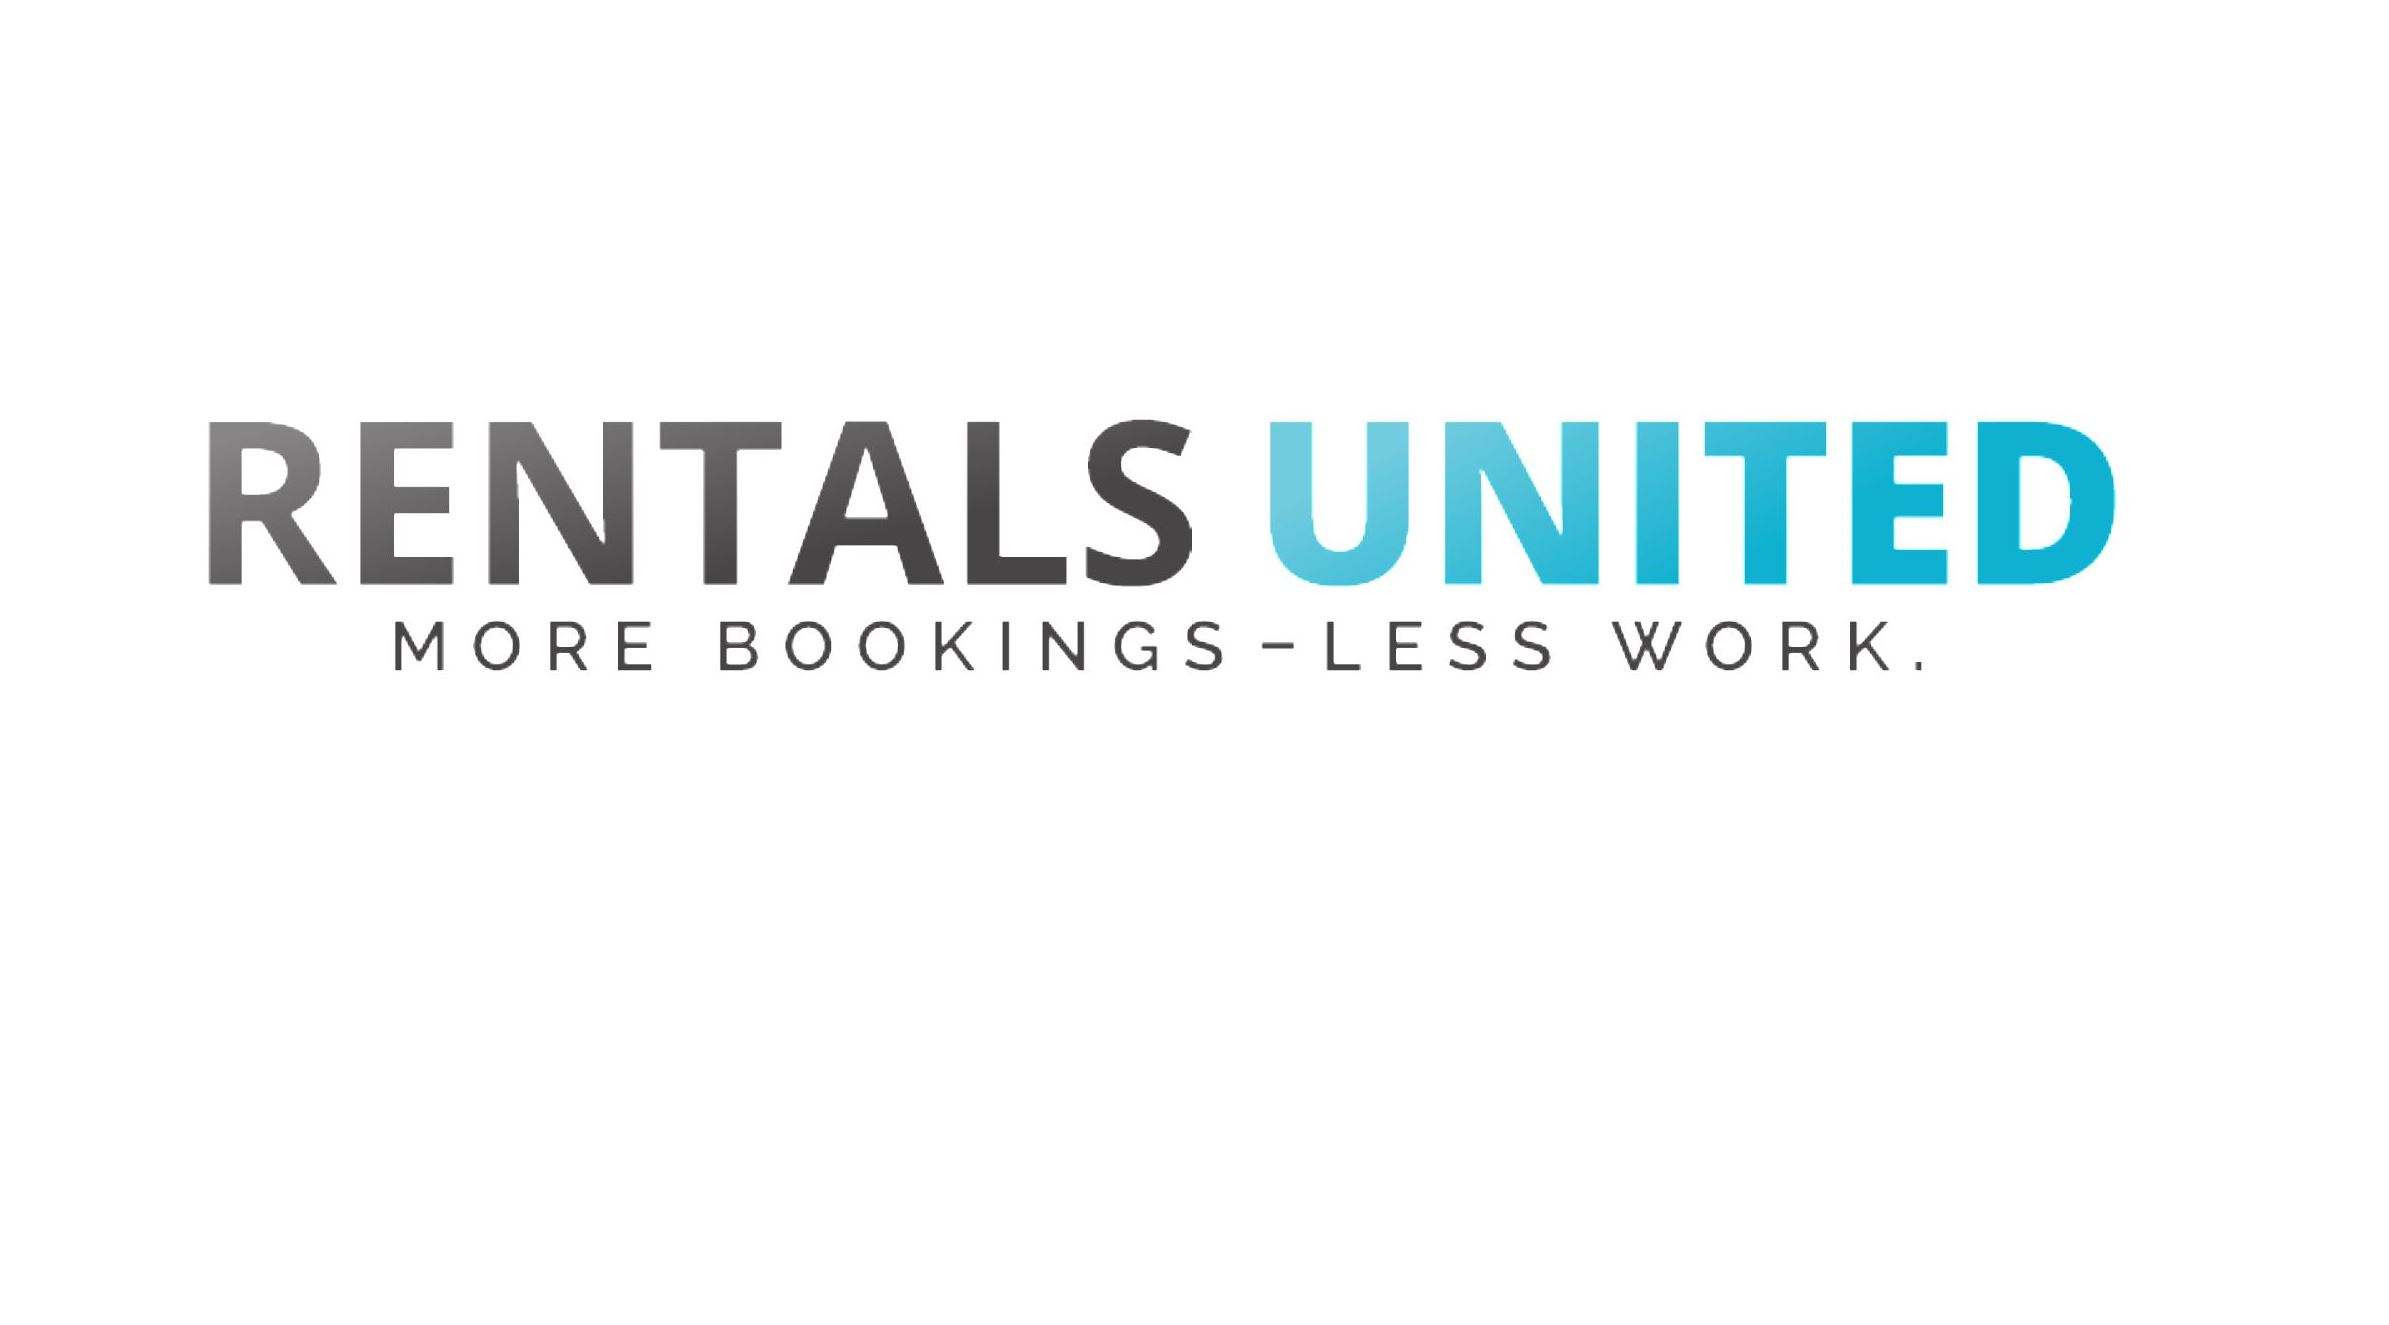 - With Rentals United you not only have your channel management needs covered... We also give you access to external services to help with your pricing, payment and operations.